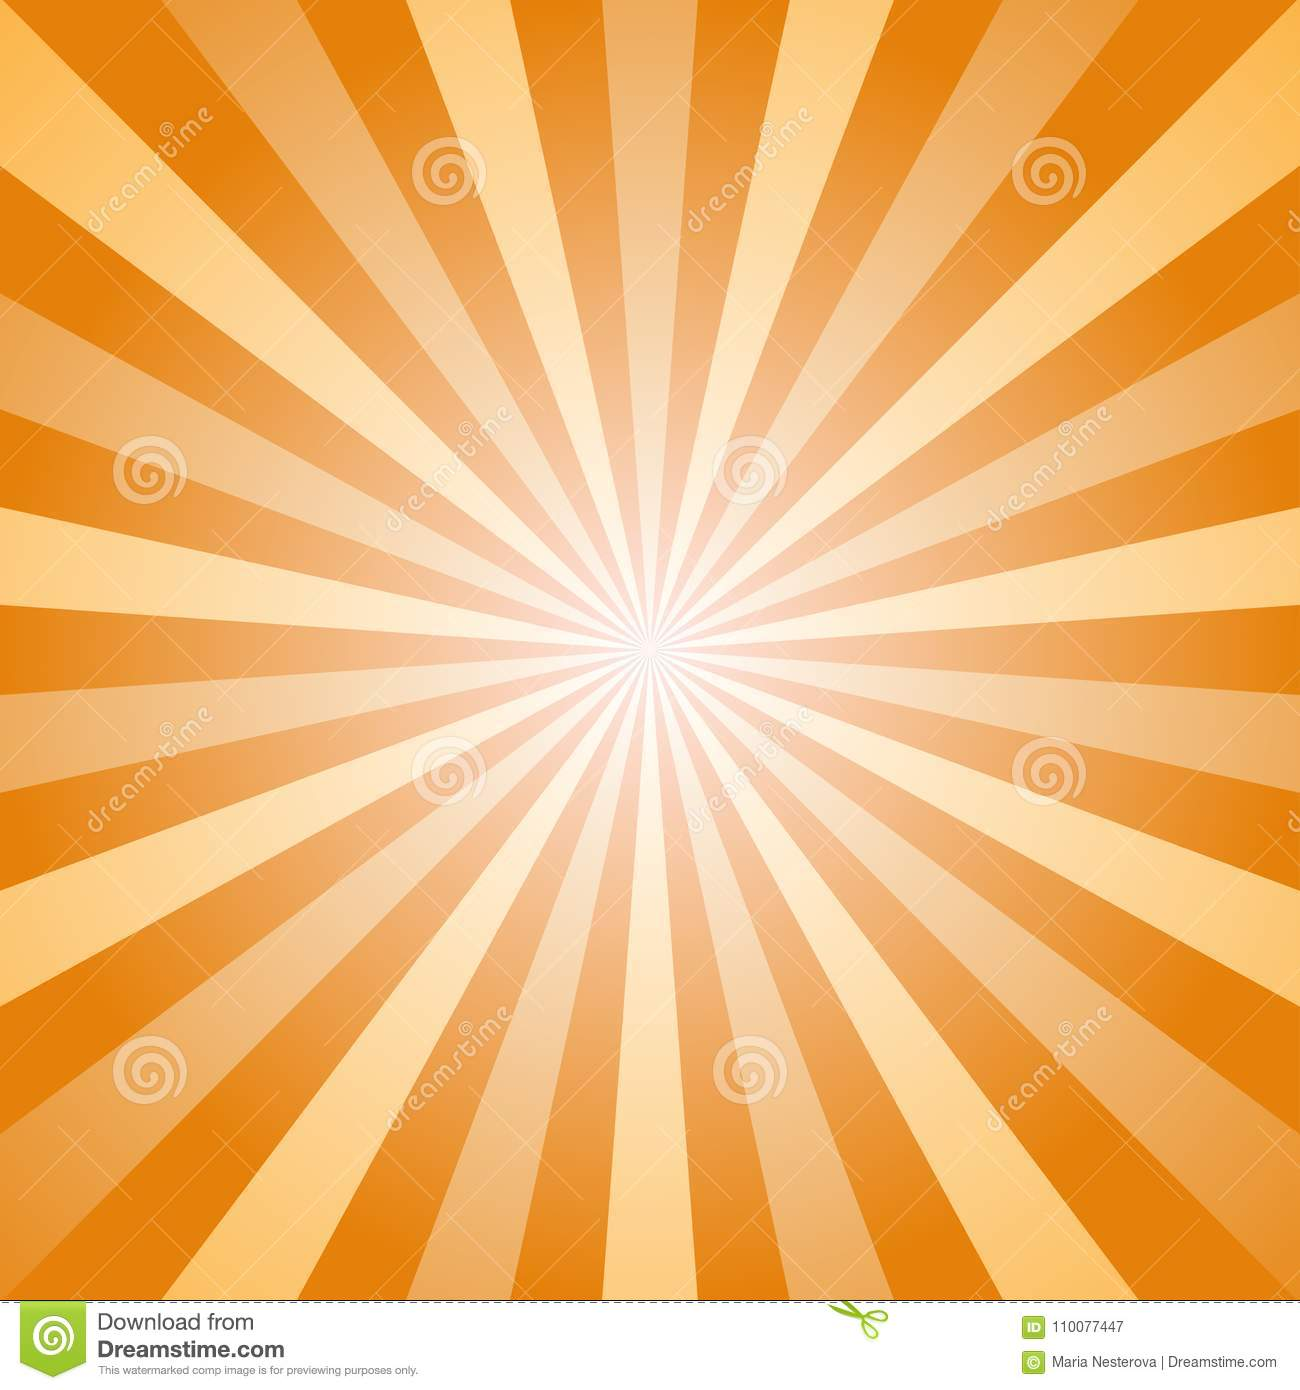 Sunlight abstract background. Orange and gold color burst background. Vector illustration. Sun beam ray